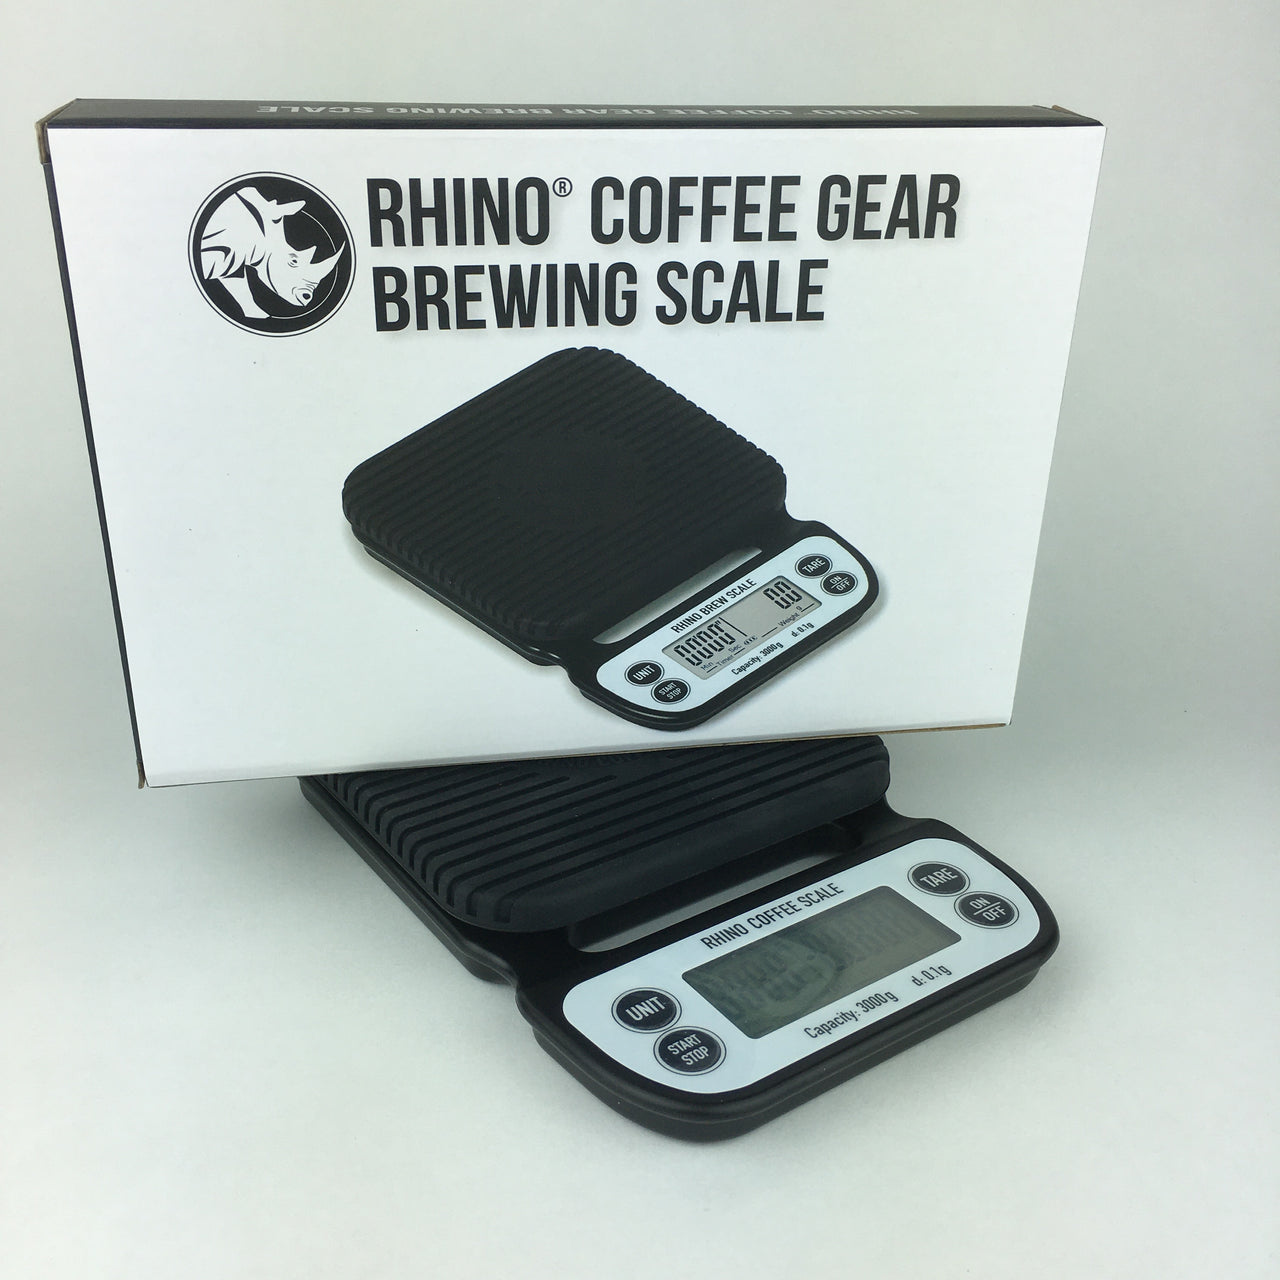 Rhino Coffee Gear Scale